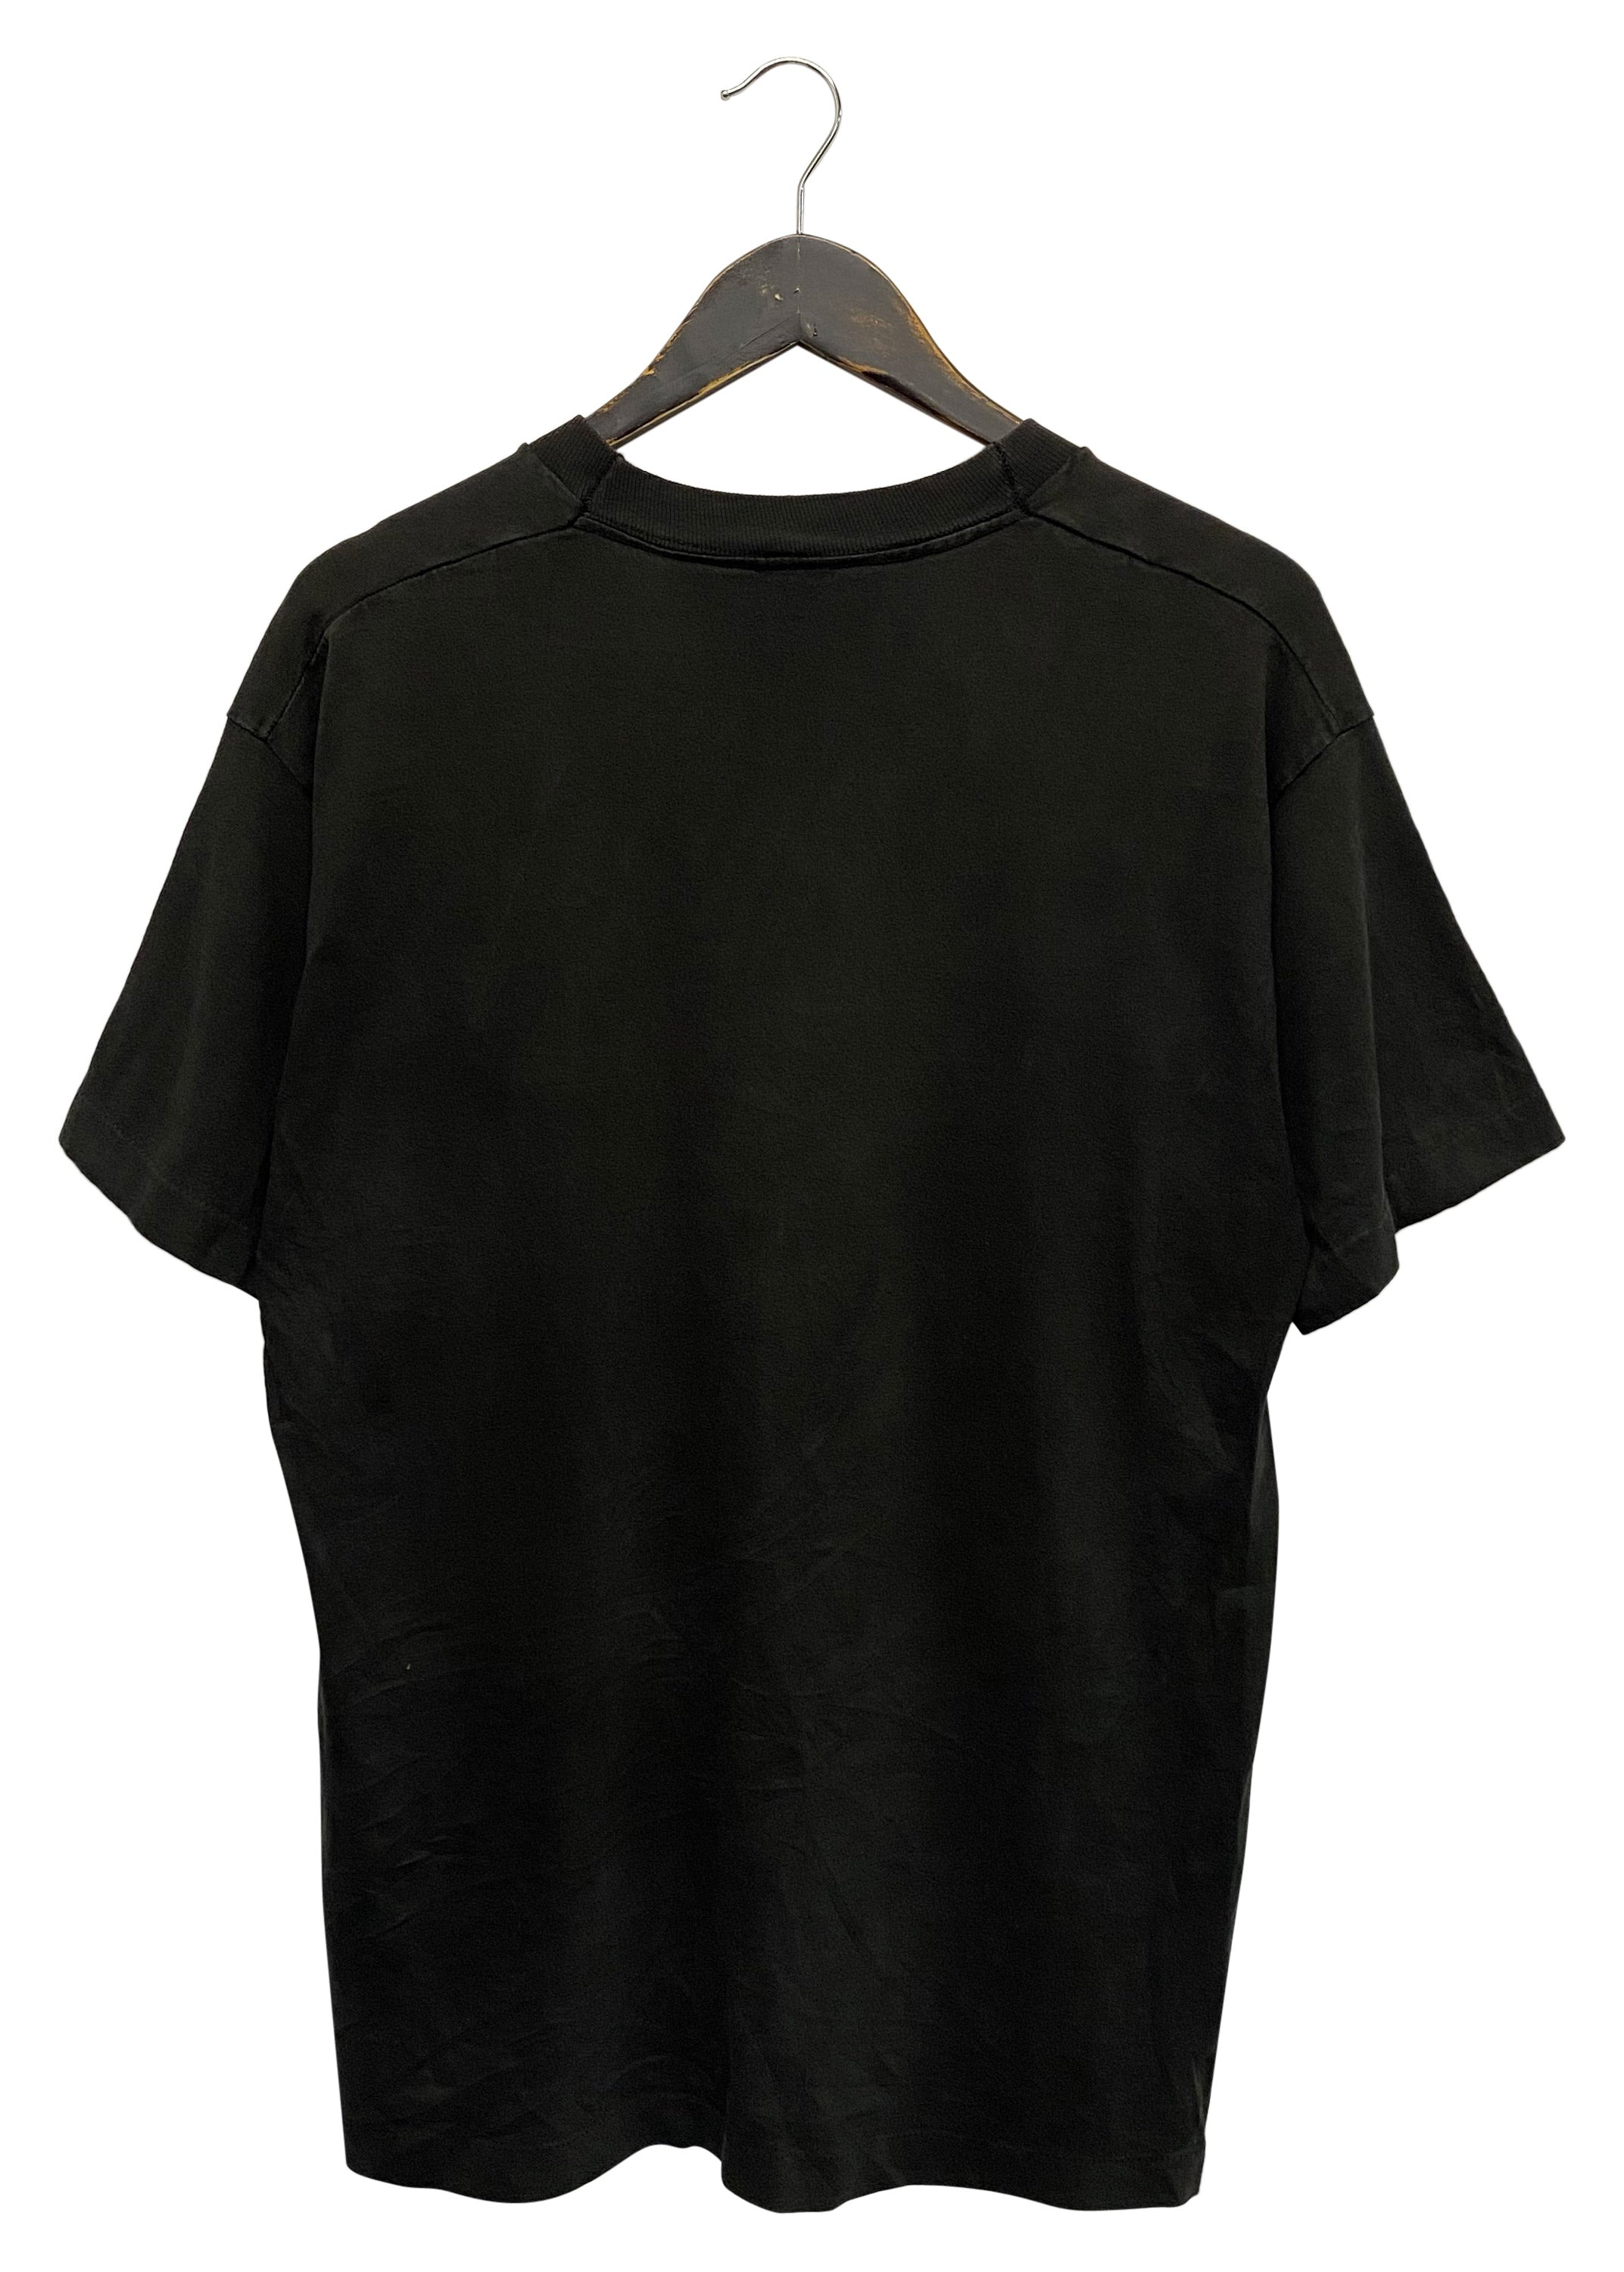 MISSOURI FOOTBALL VINTAGE TEE